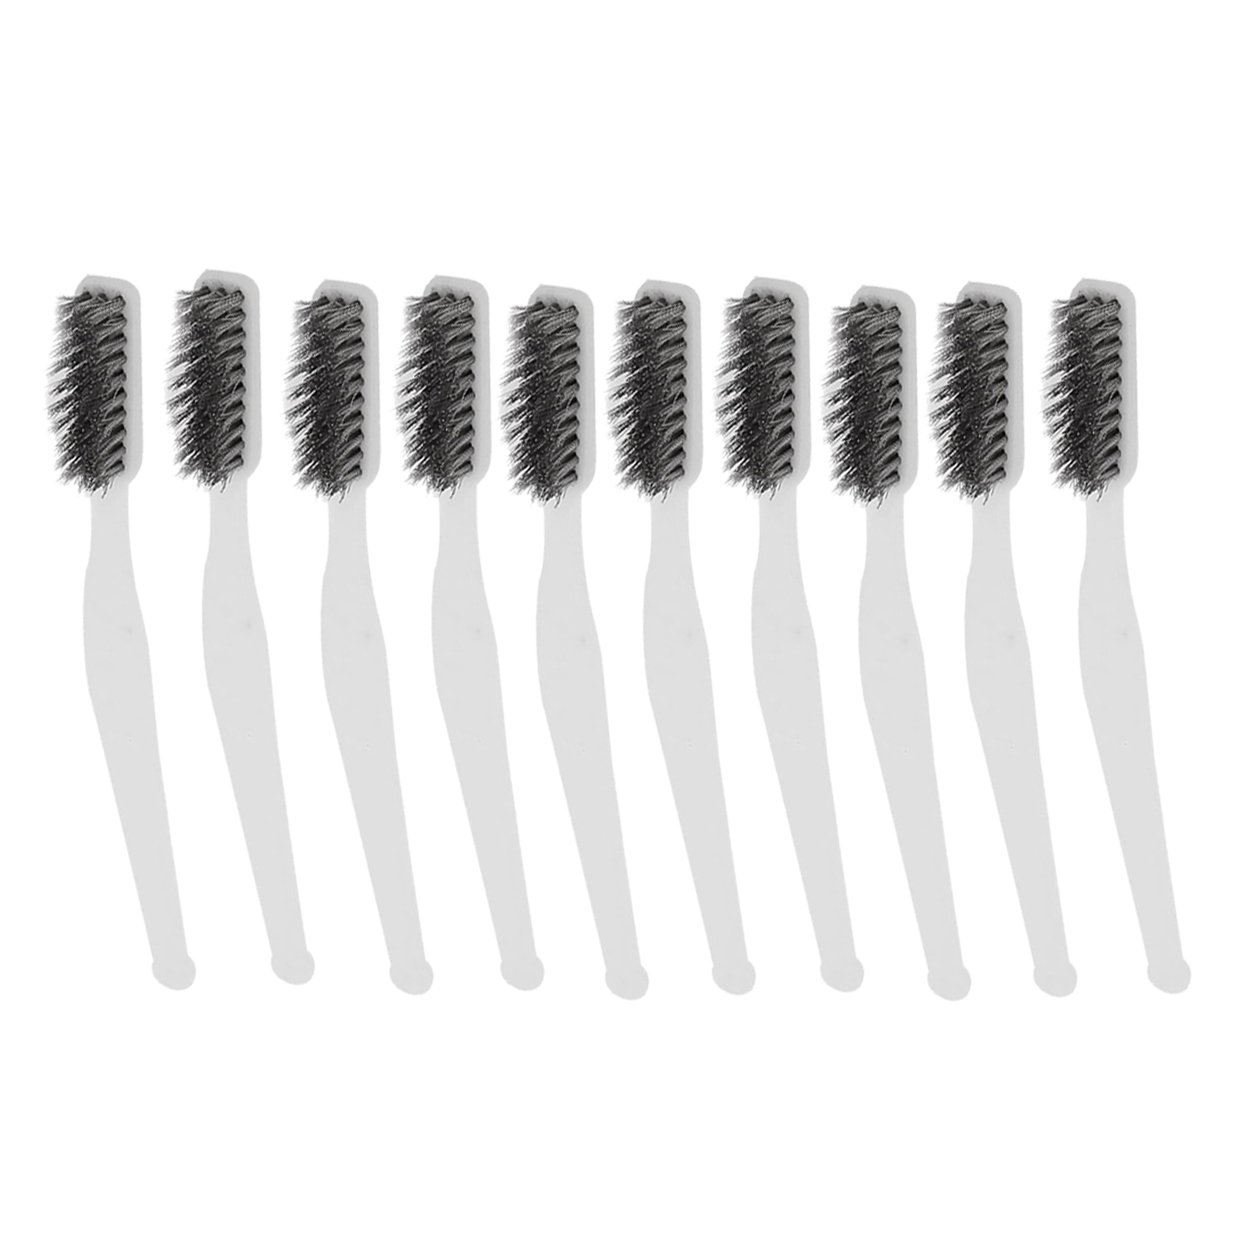 Saim 7 inch Mini Stainless Steel Wire Brush Set for Cleaning Welding Slag and Rust Pack of 10